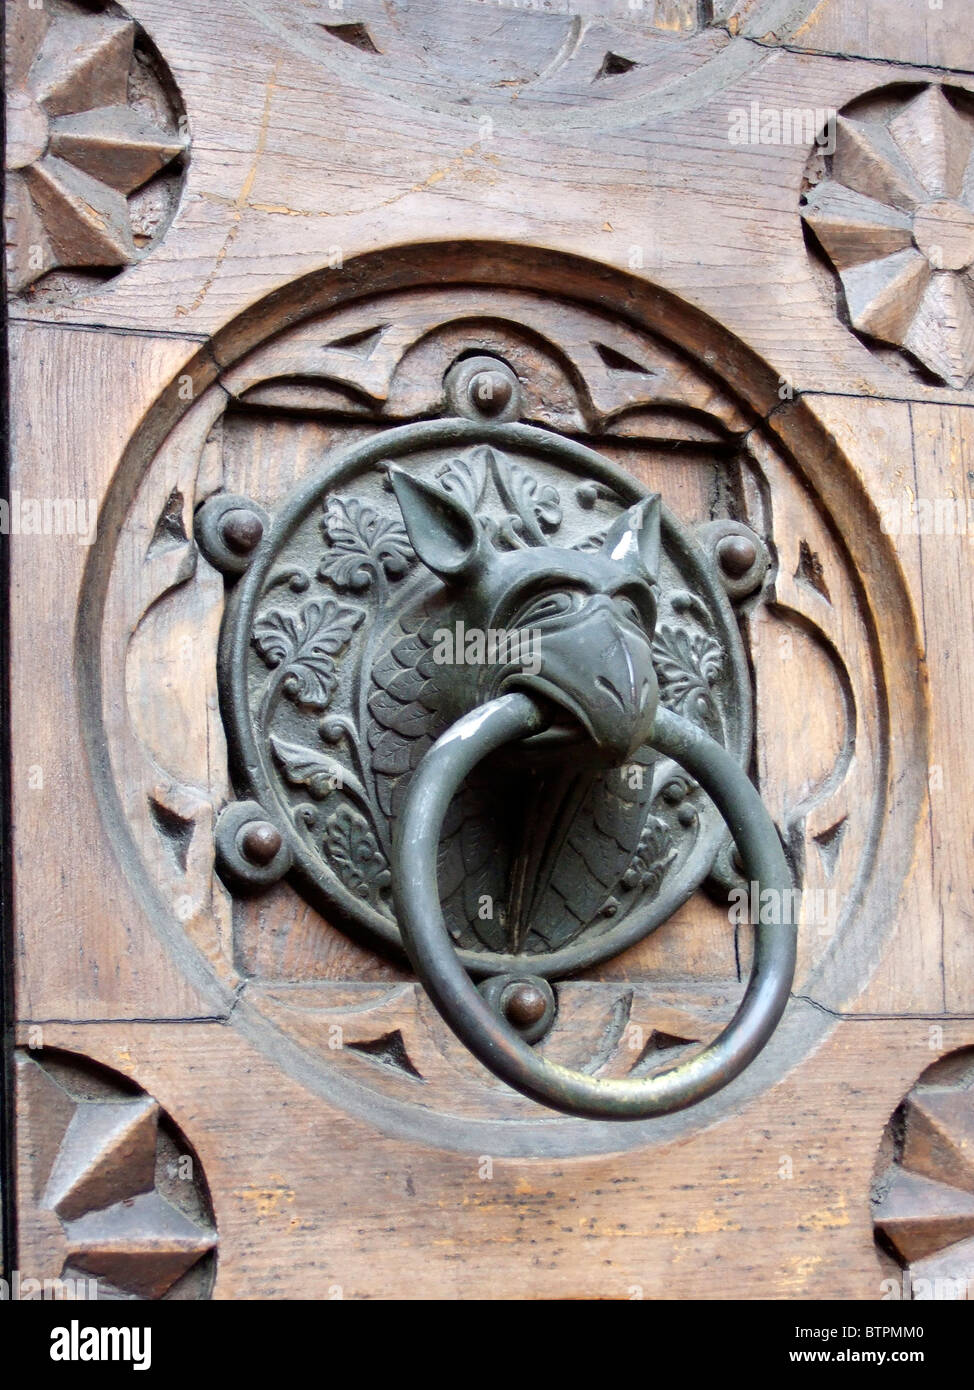 Italy, Trentino Alto Adige, Trento Cathedral with griffin detail on door - Stock Image